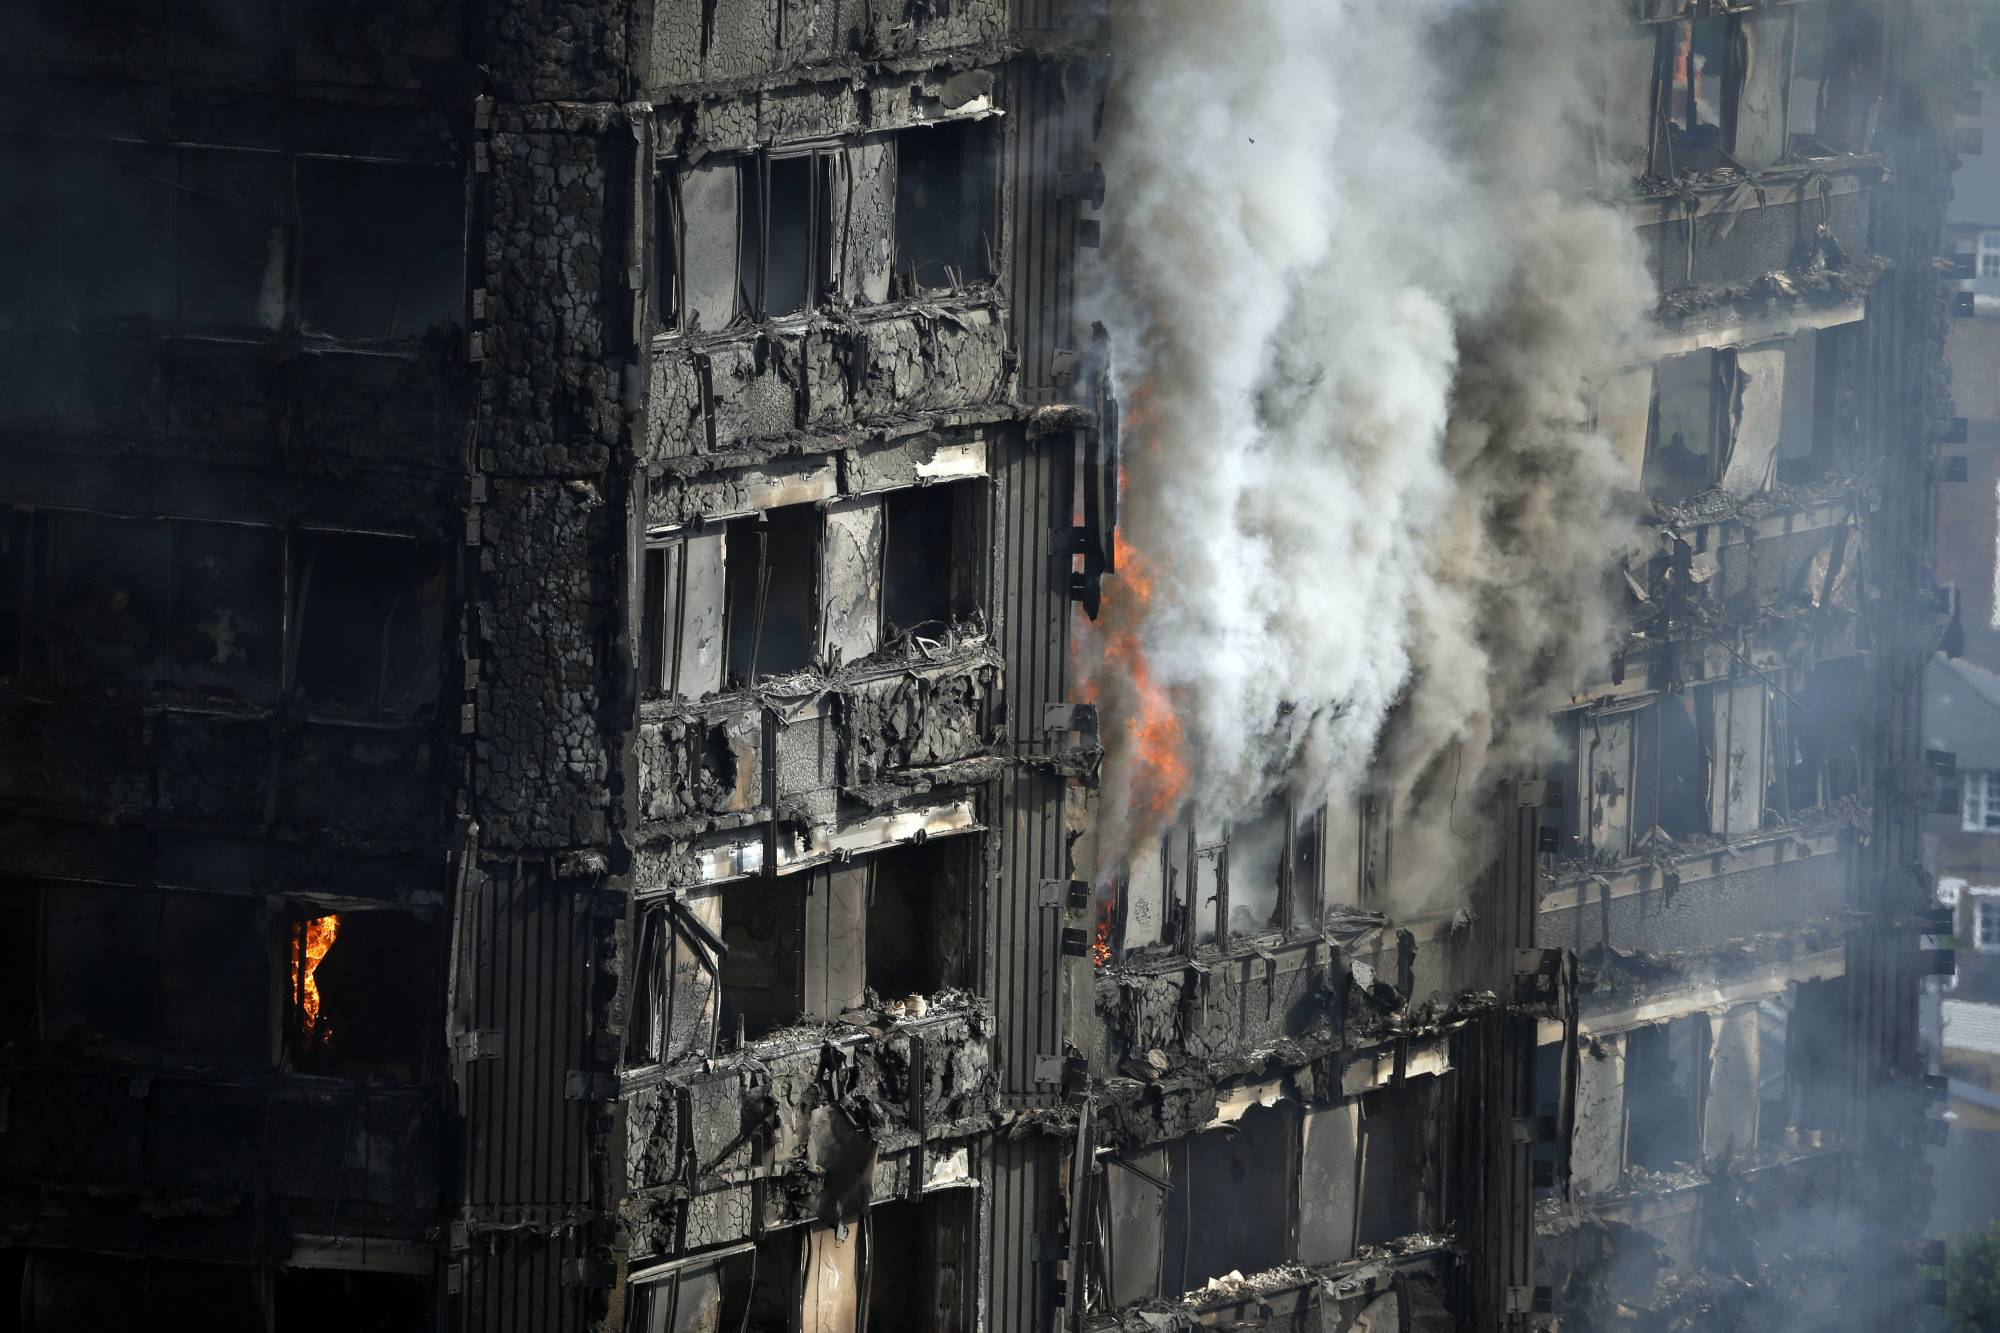 cbs46.com London residents demands answers in deadly high-rise blaze